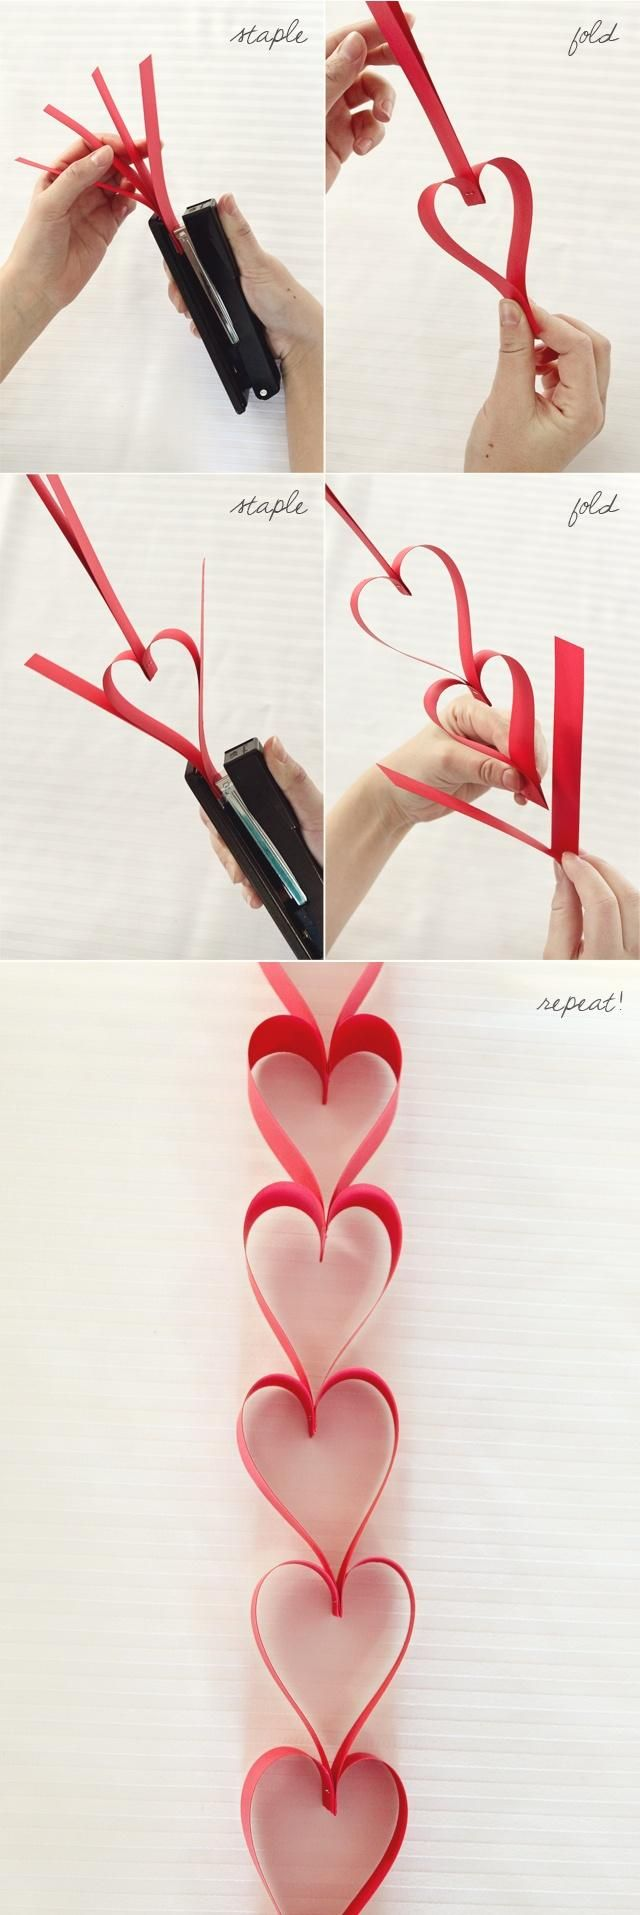 Dimensional Heart Crafts